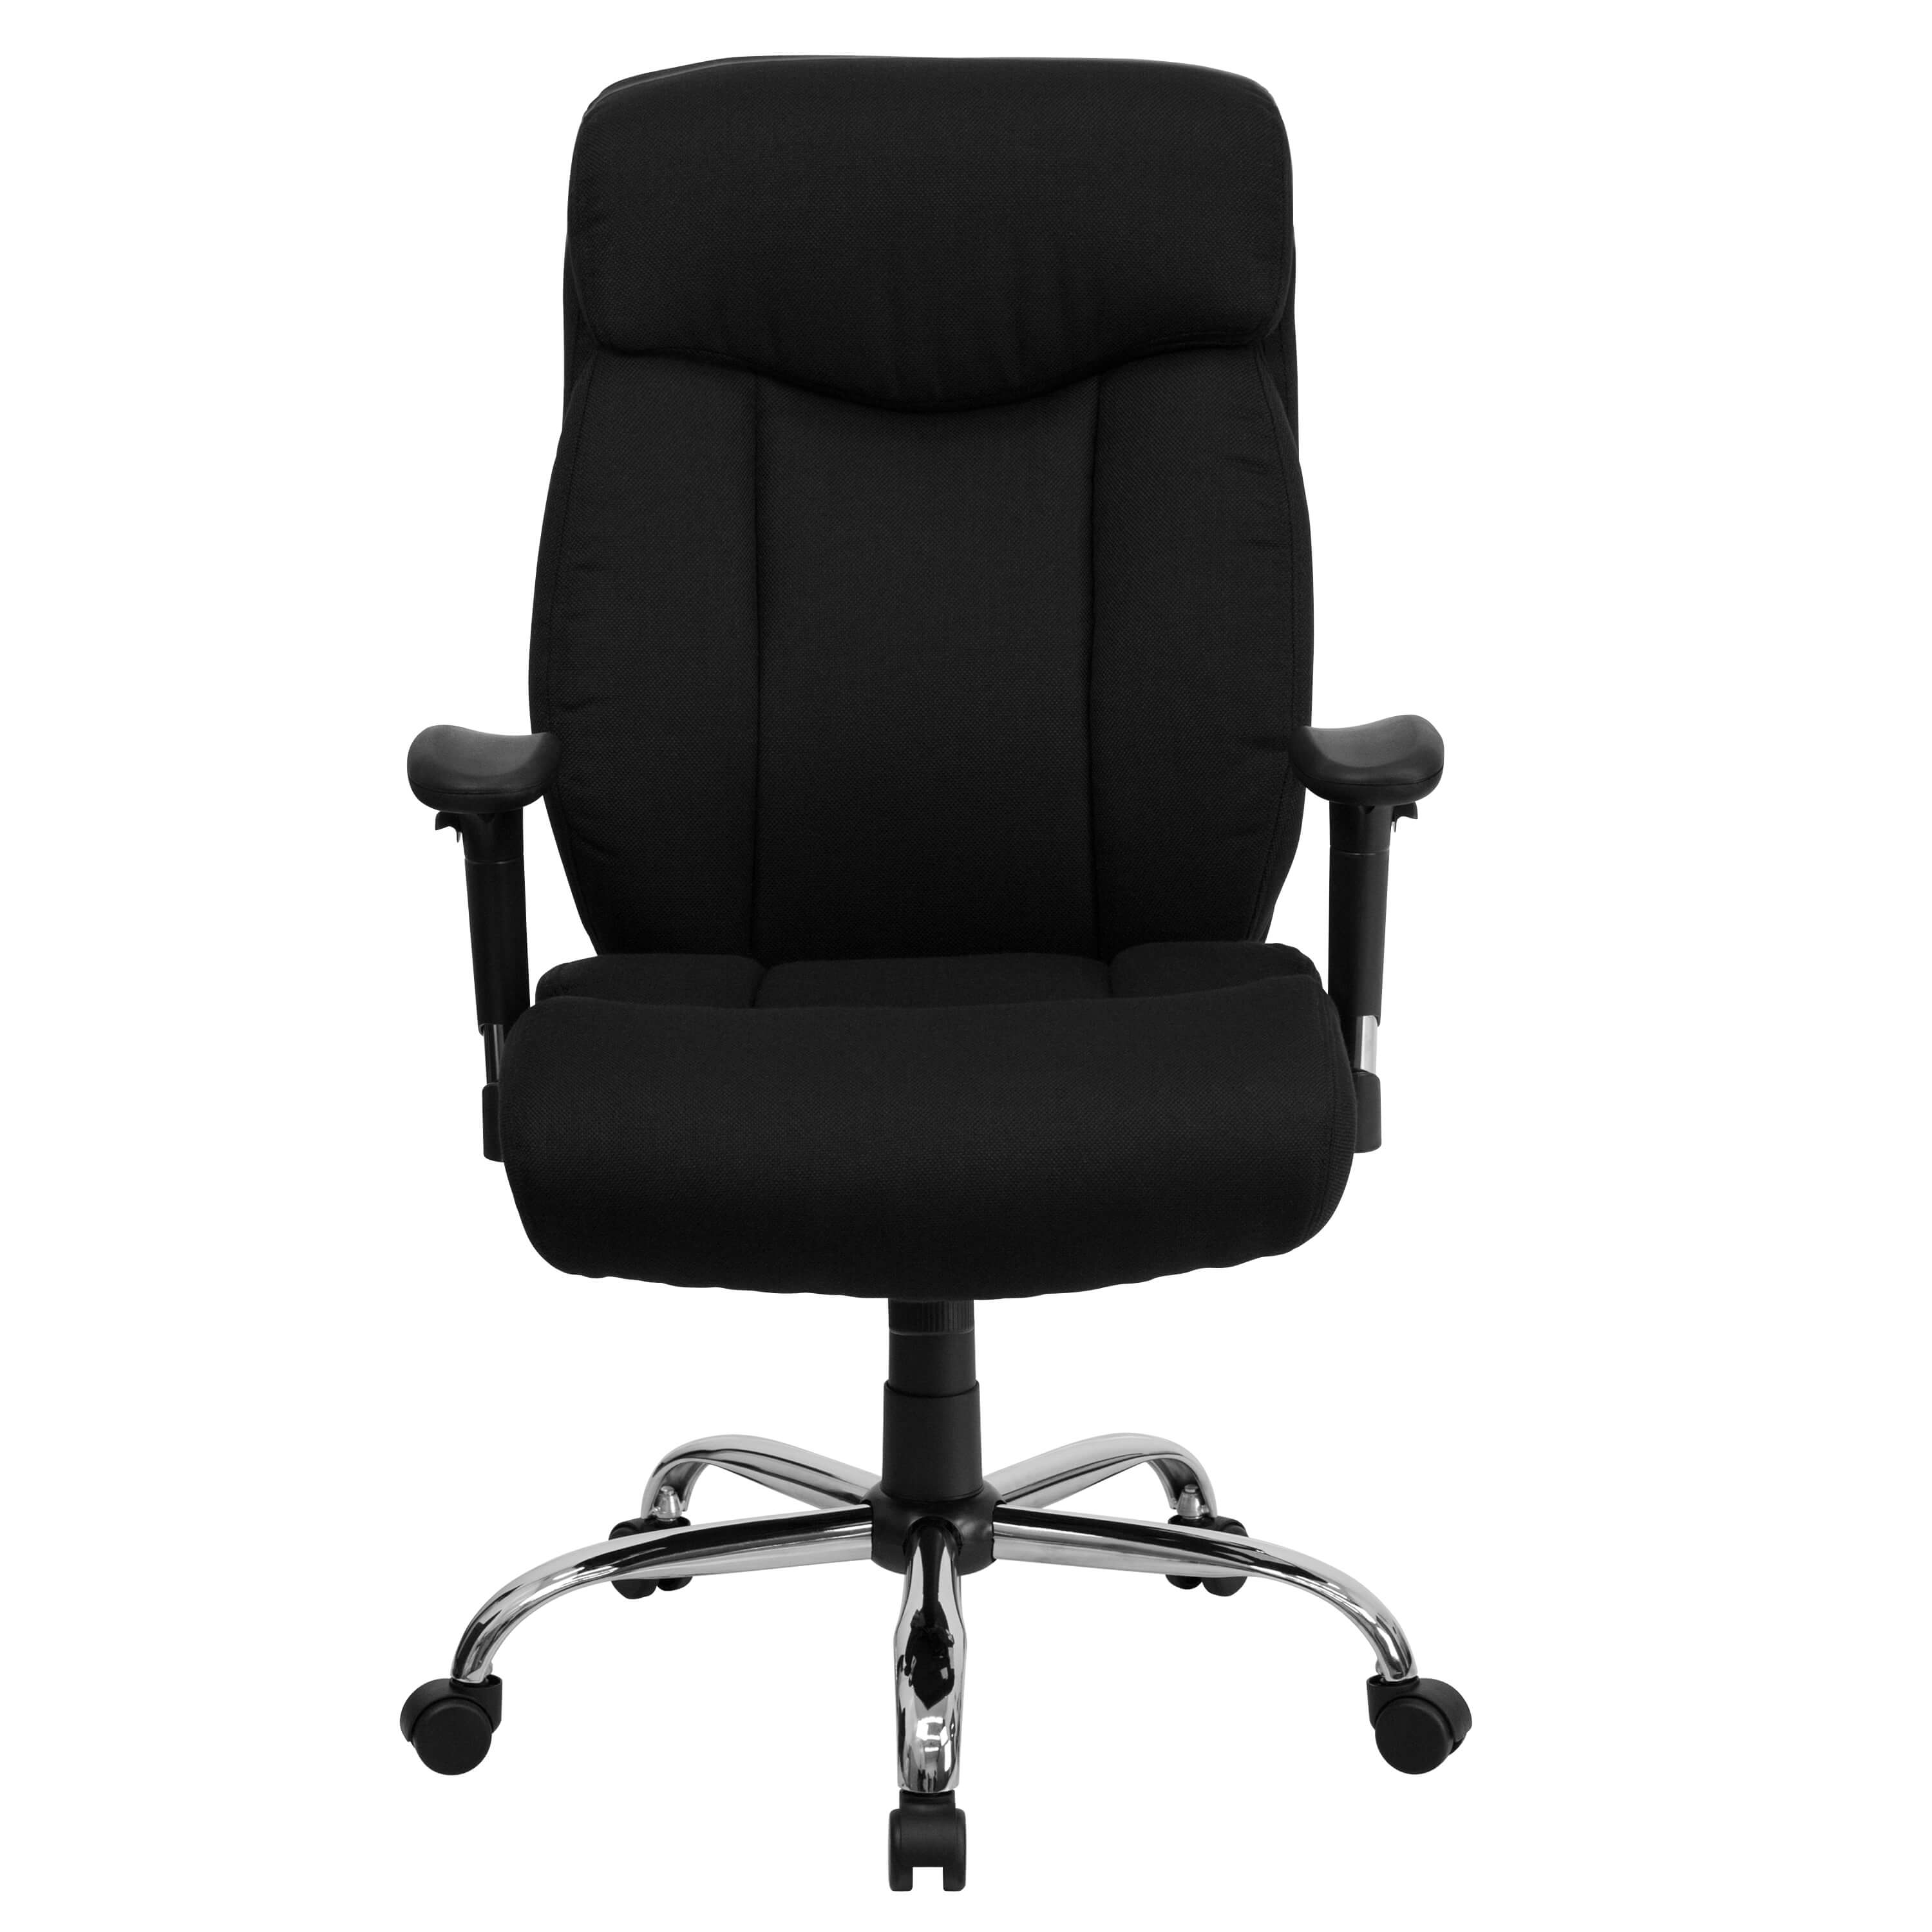 Heavy duty ergonomic office chairs front view